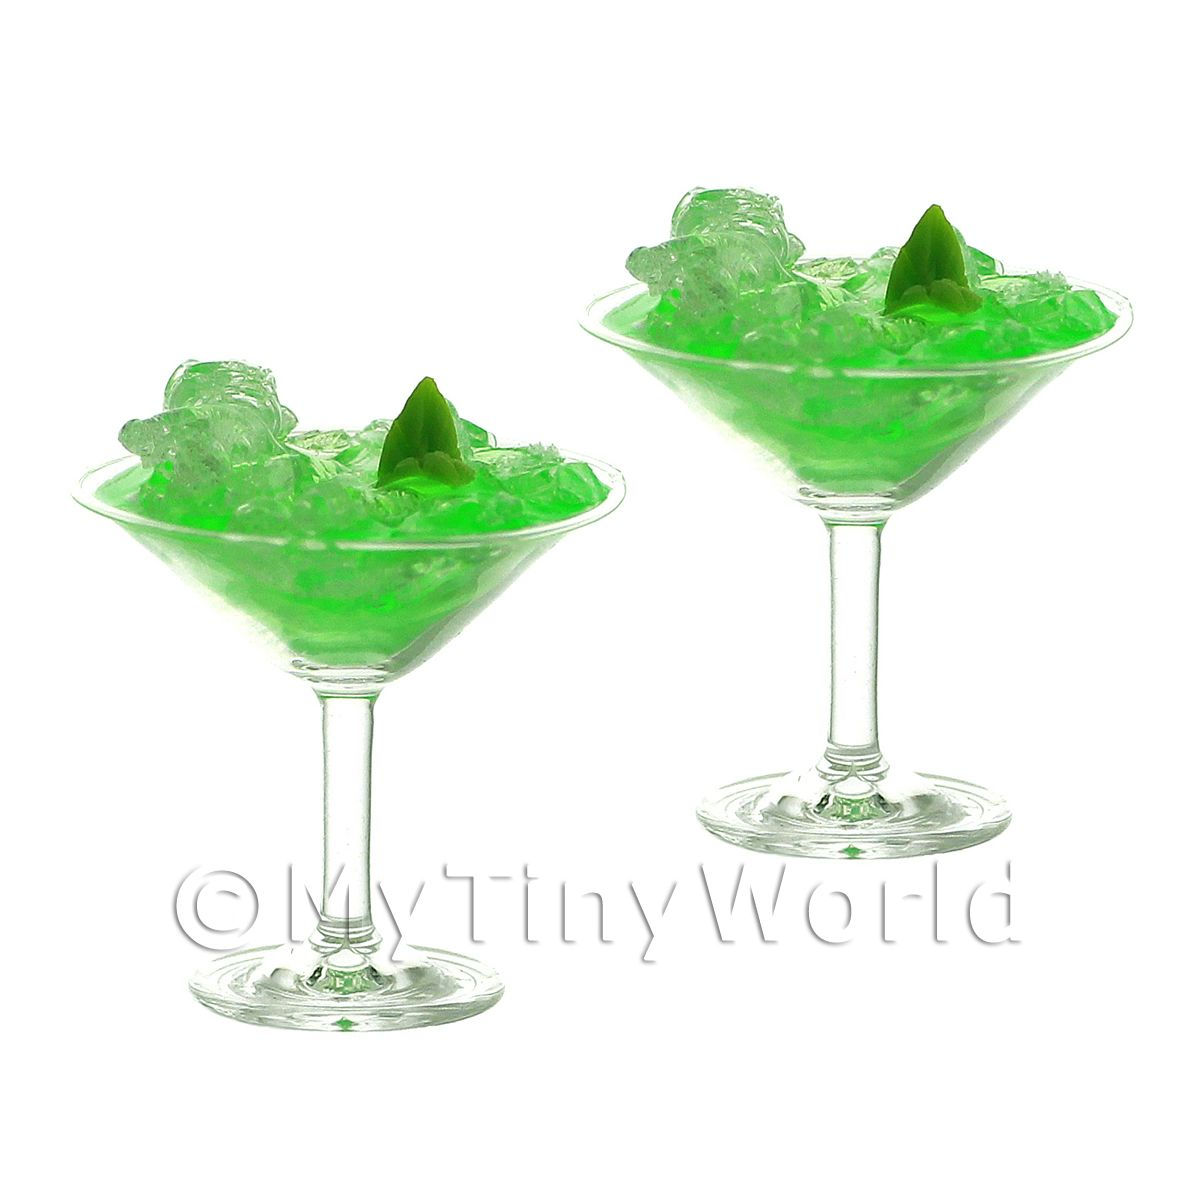 2 Miniature Pravda Mintini Cocktails In Martini Glasses